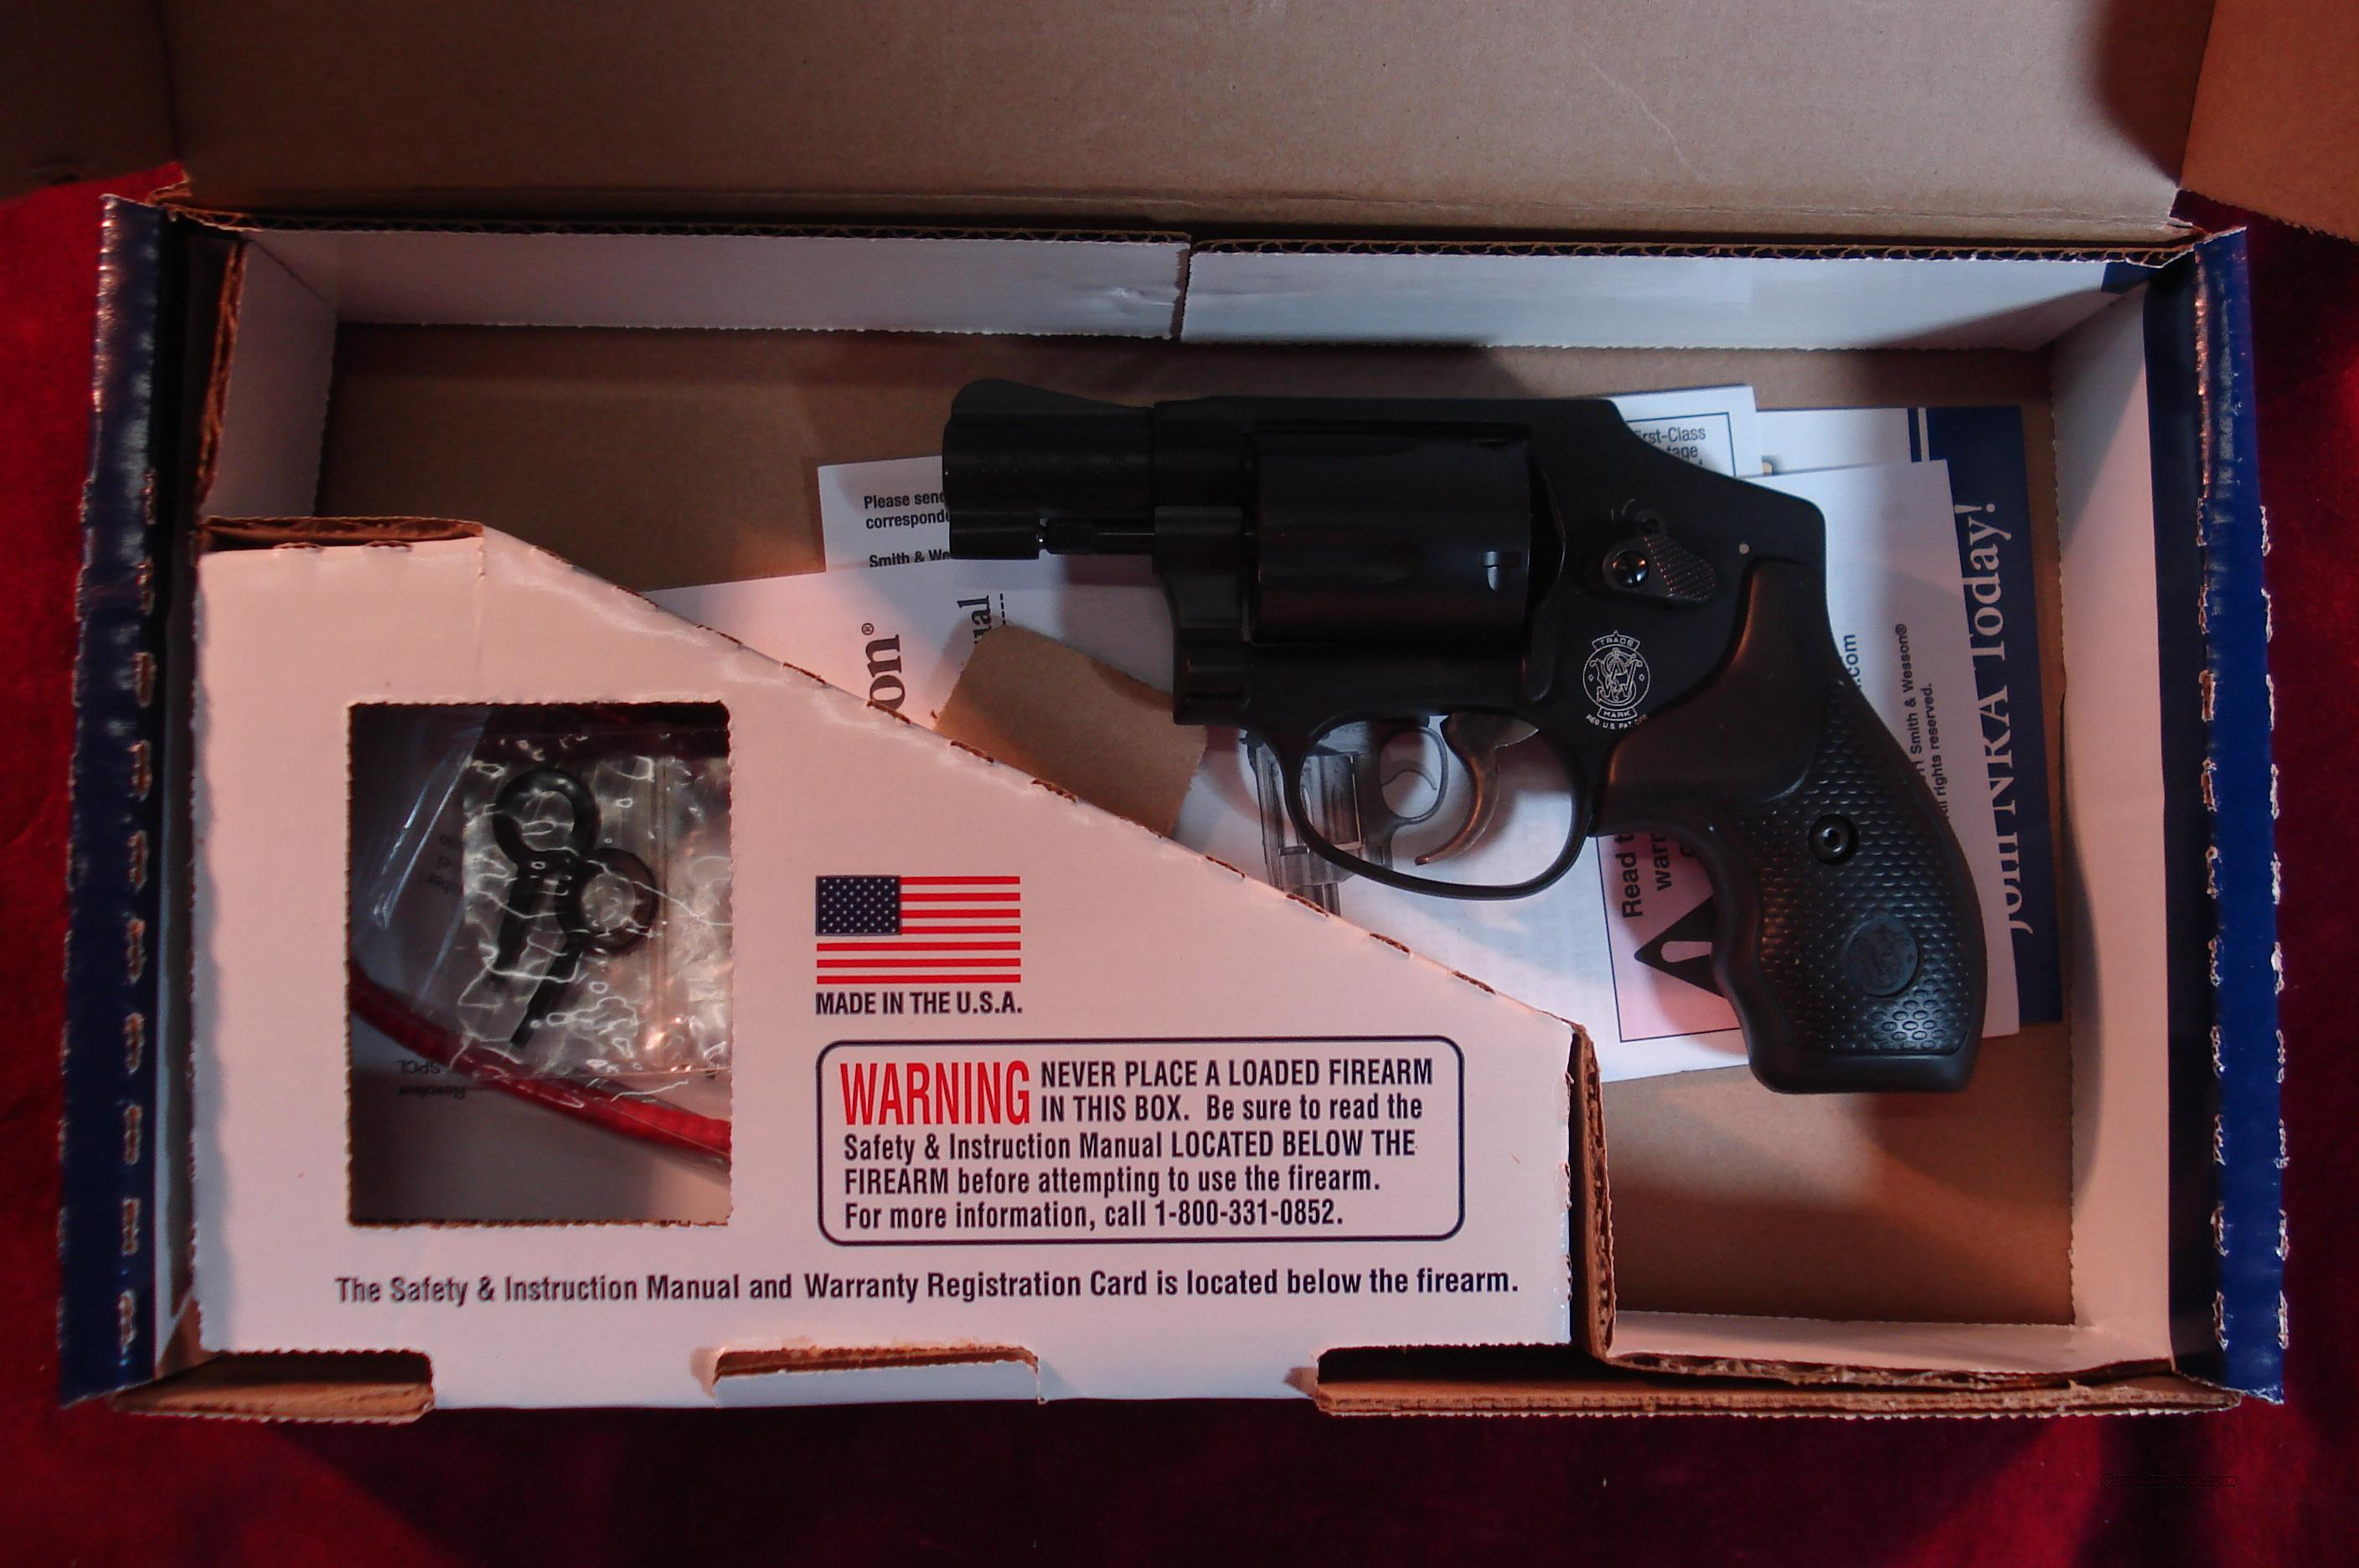 SMITH AND WESSON 442 38 SPECIAL CAL. NEW  (162810)   Guns > Pistols > Smith & Wesson Revolvers > Pocket Pistols